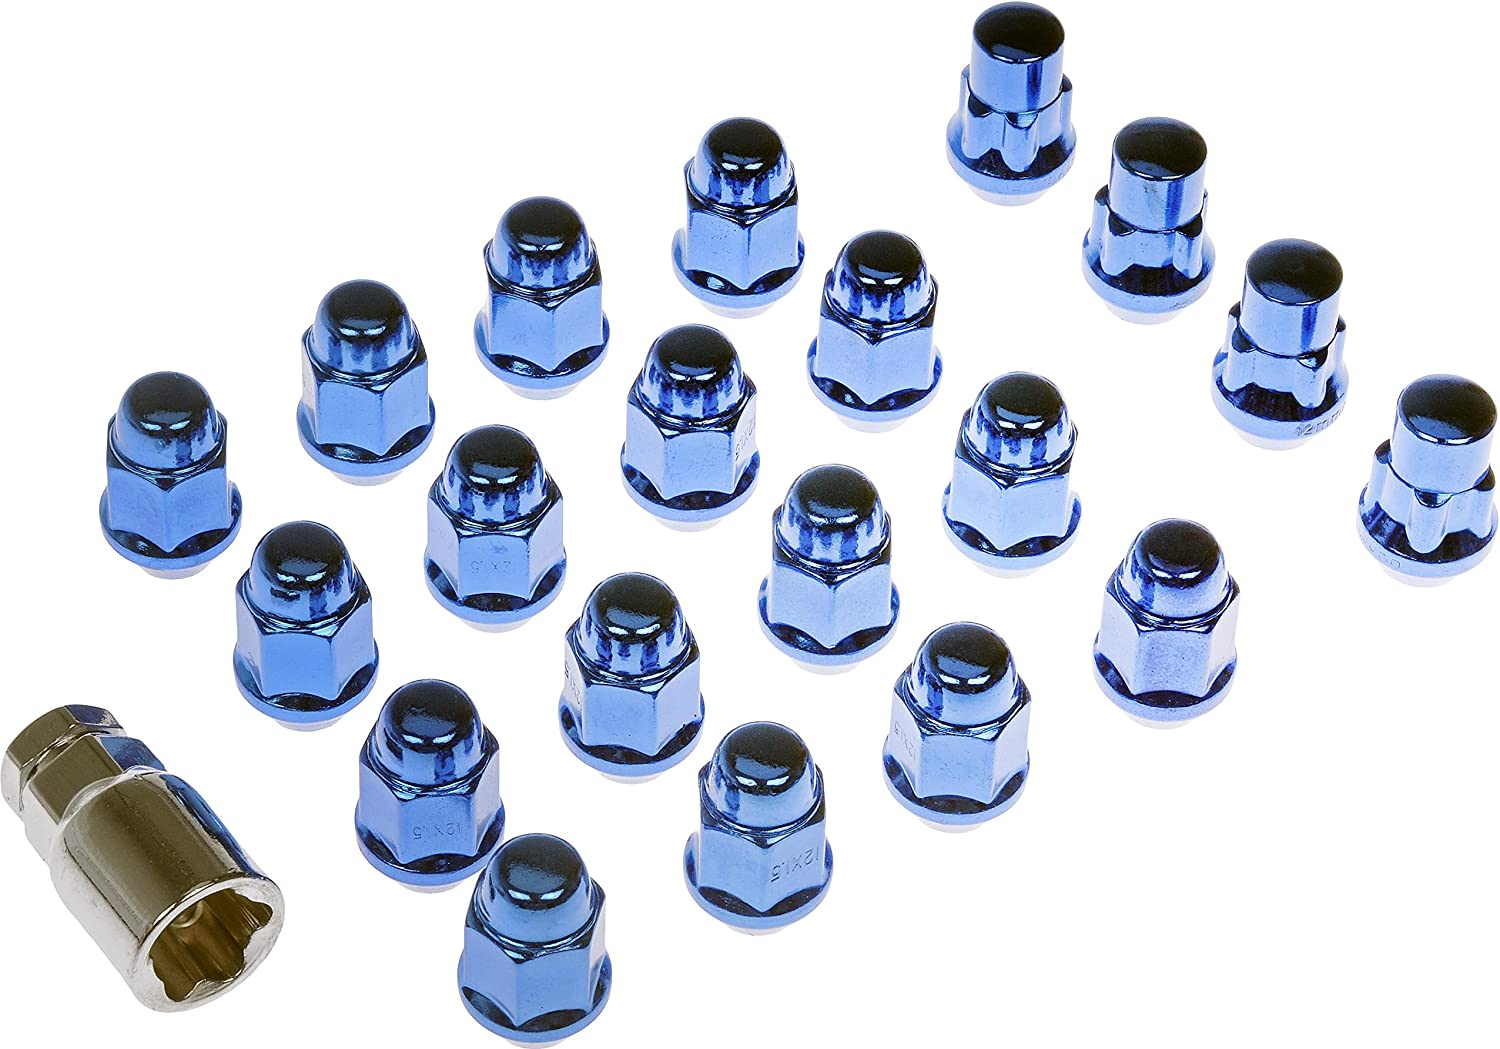 Dorman 711-342 Pack of 16 Wheel 4 and Key with Lock Nuts Reservation Quantity limited